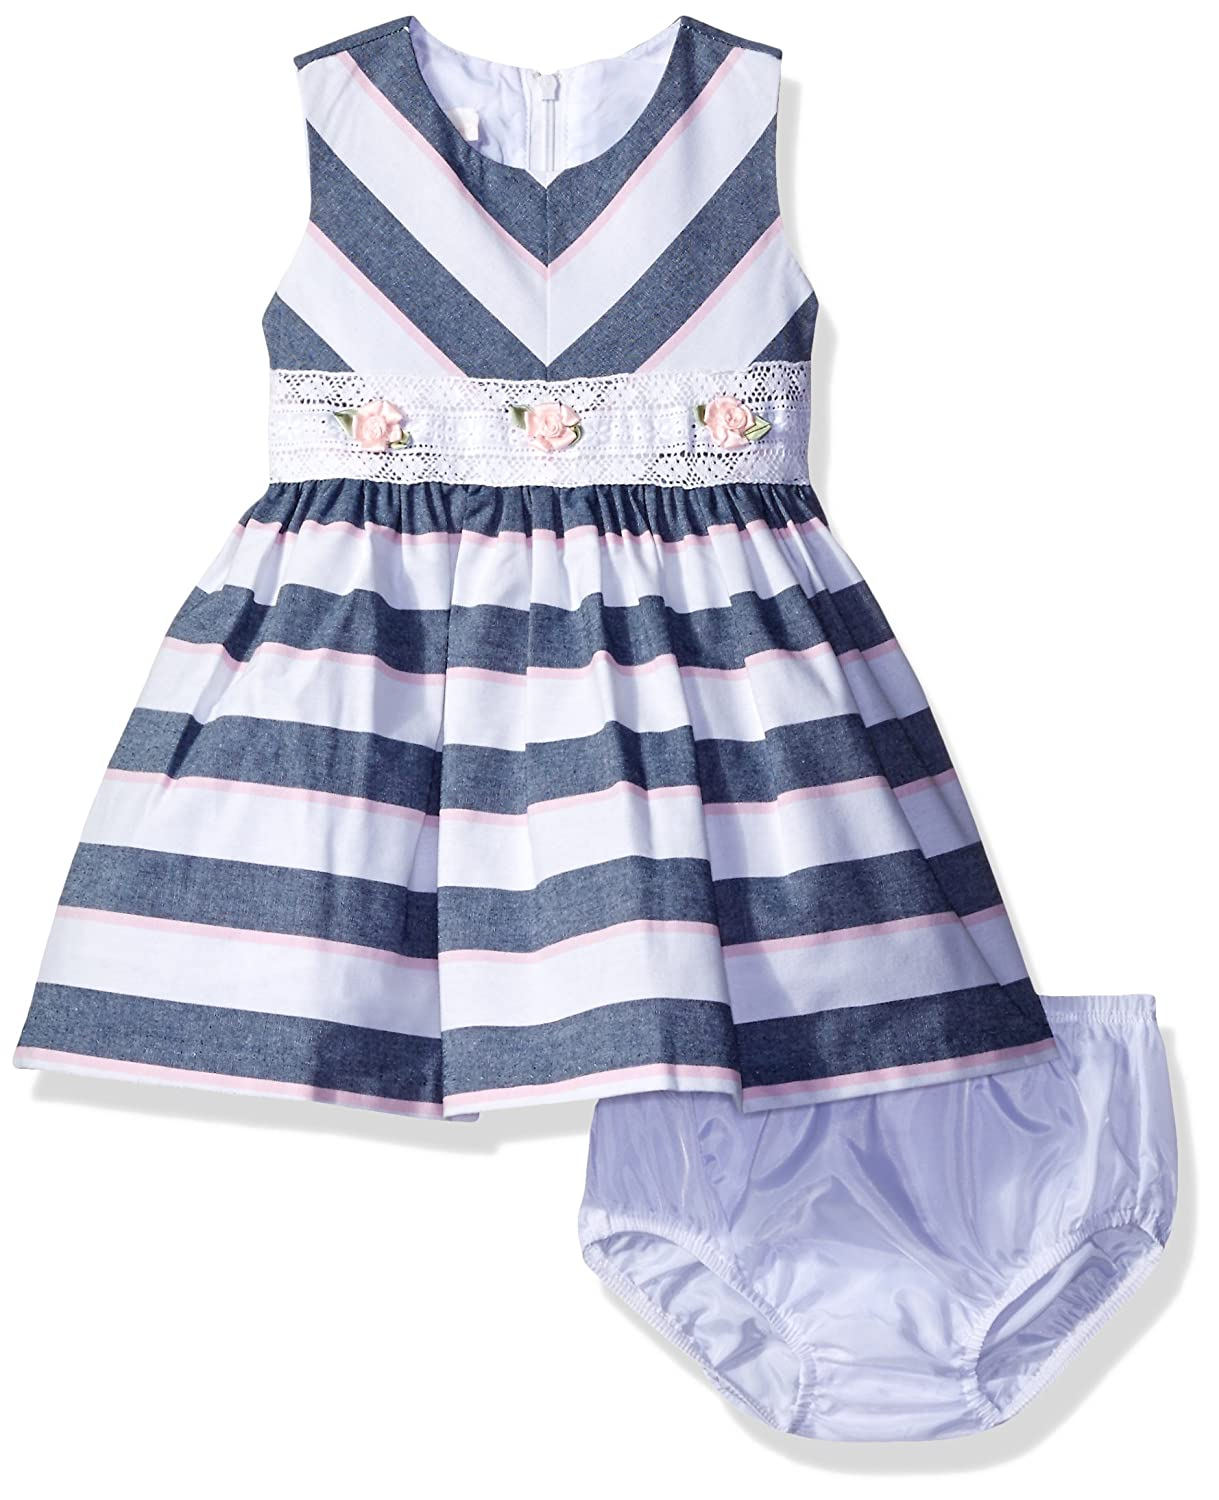 c62836201b17 Top1  Bonnie Baby Baby Girls  Chambray Dress and Panty Set